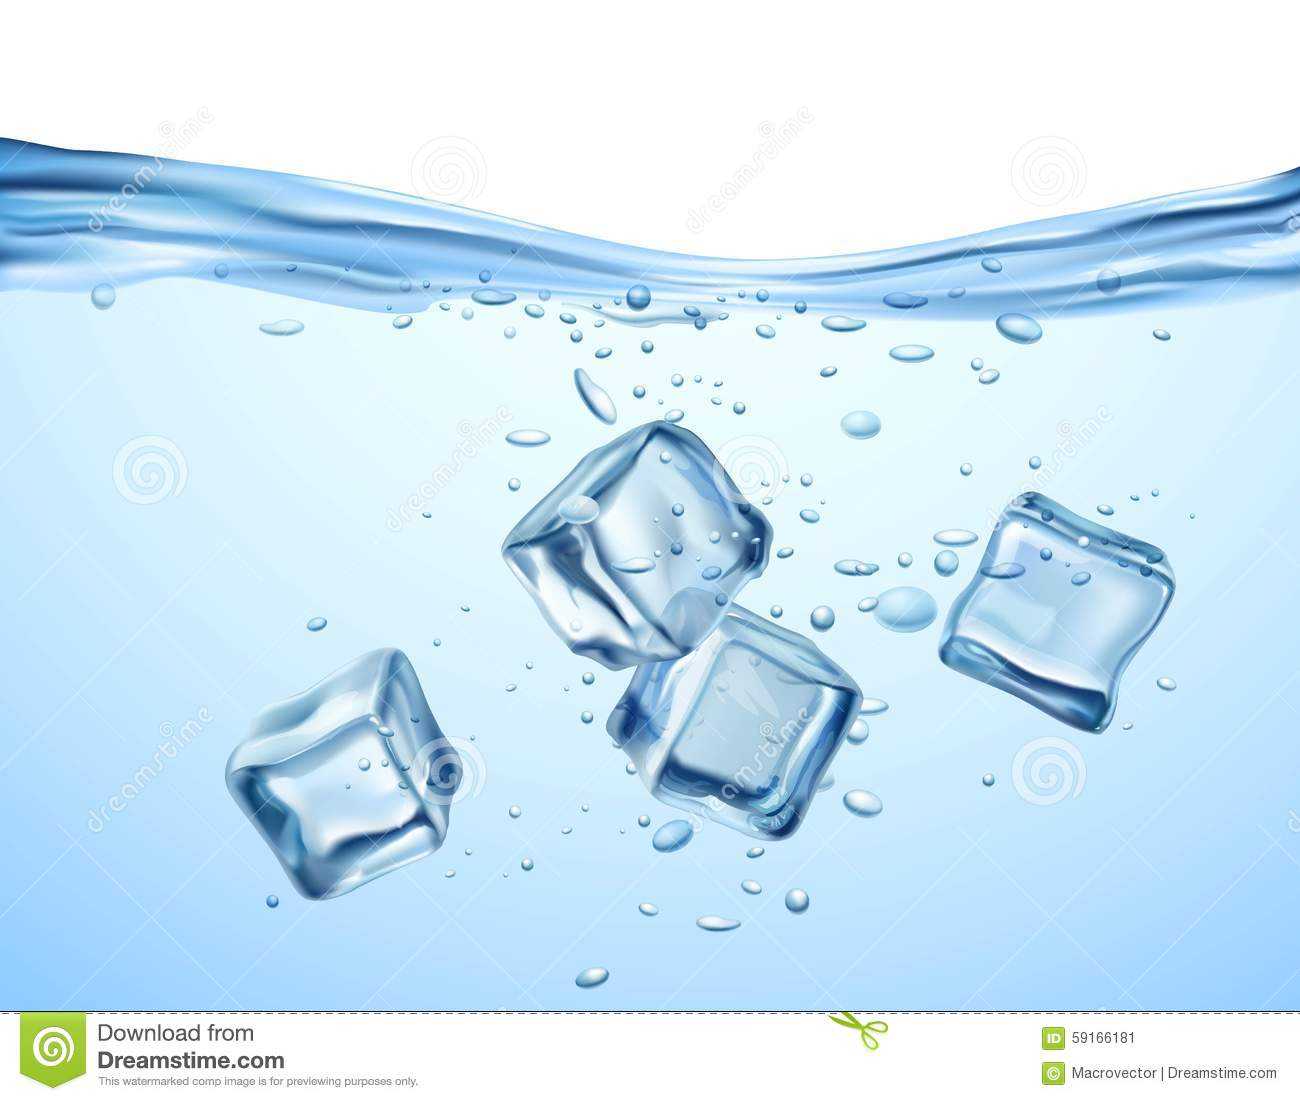 Ice Cubes In Water Stock Vector - Image: 59166181